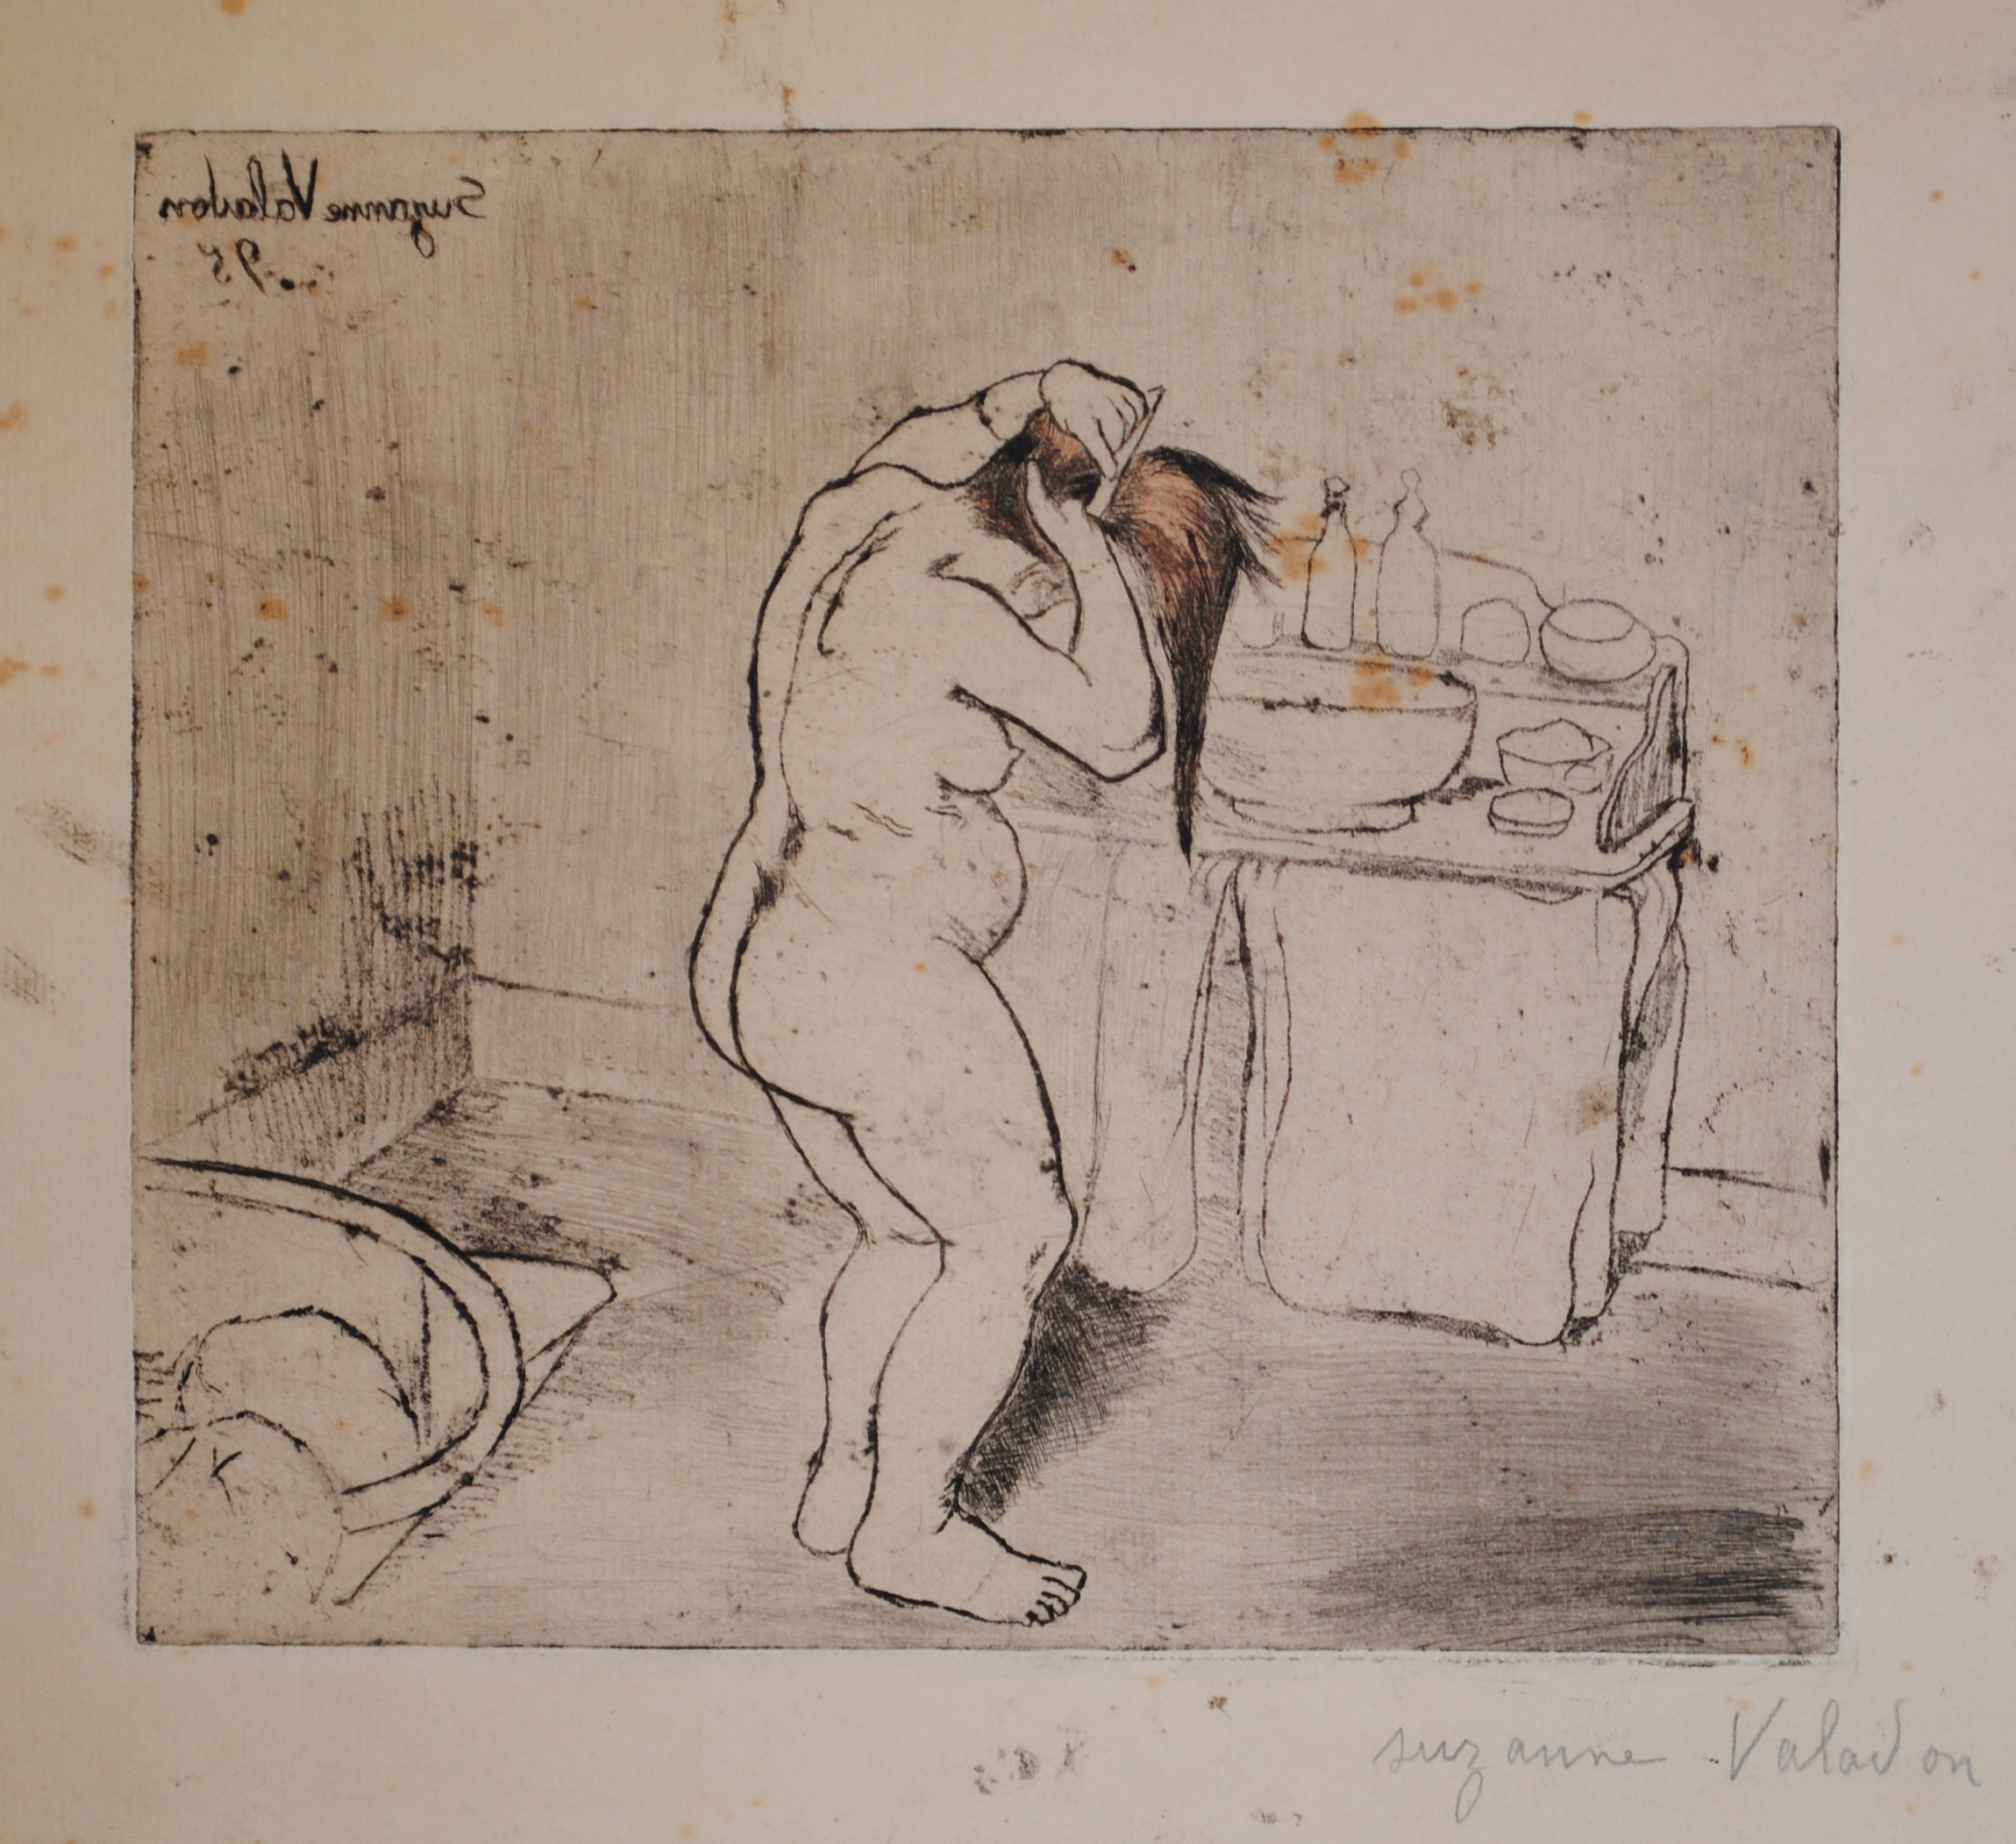 Suzanne Valadon, Catherine nue se coiffant, soft-ground etching, 1895